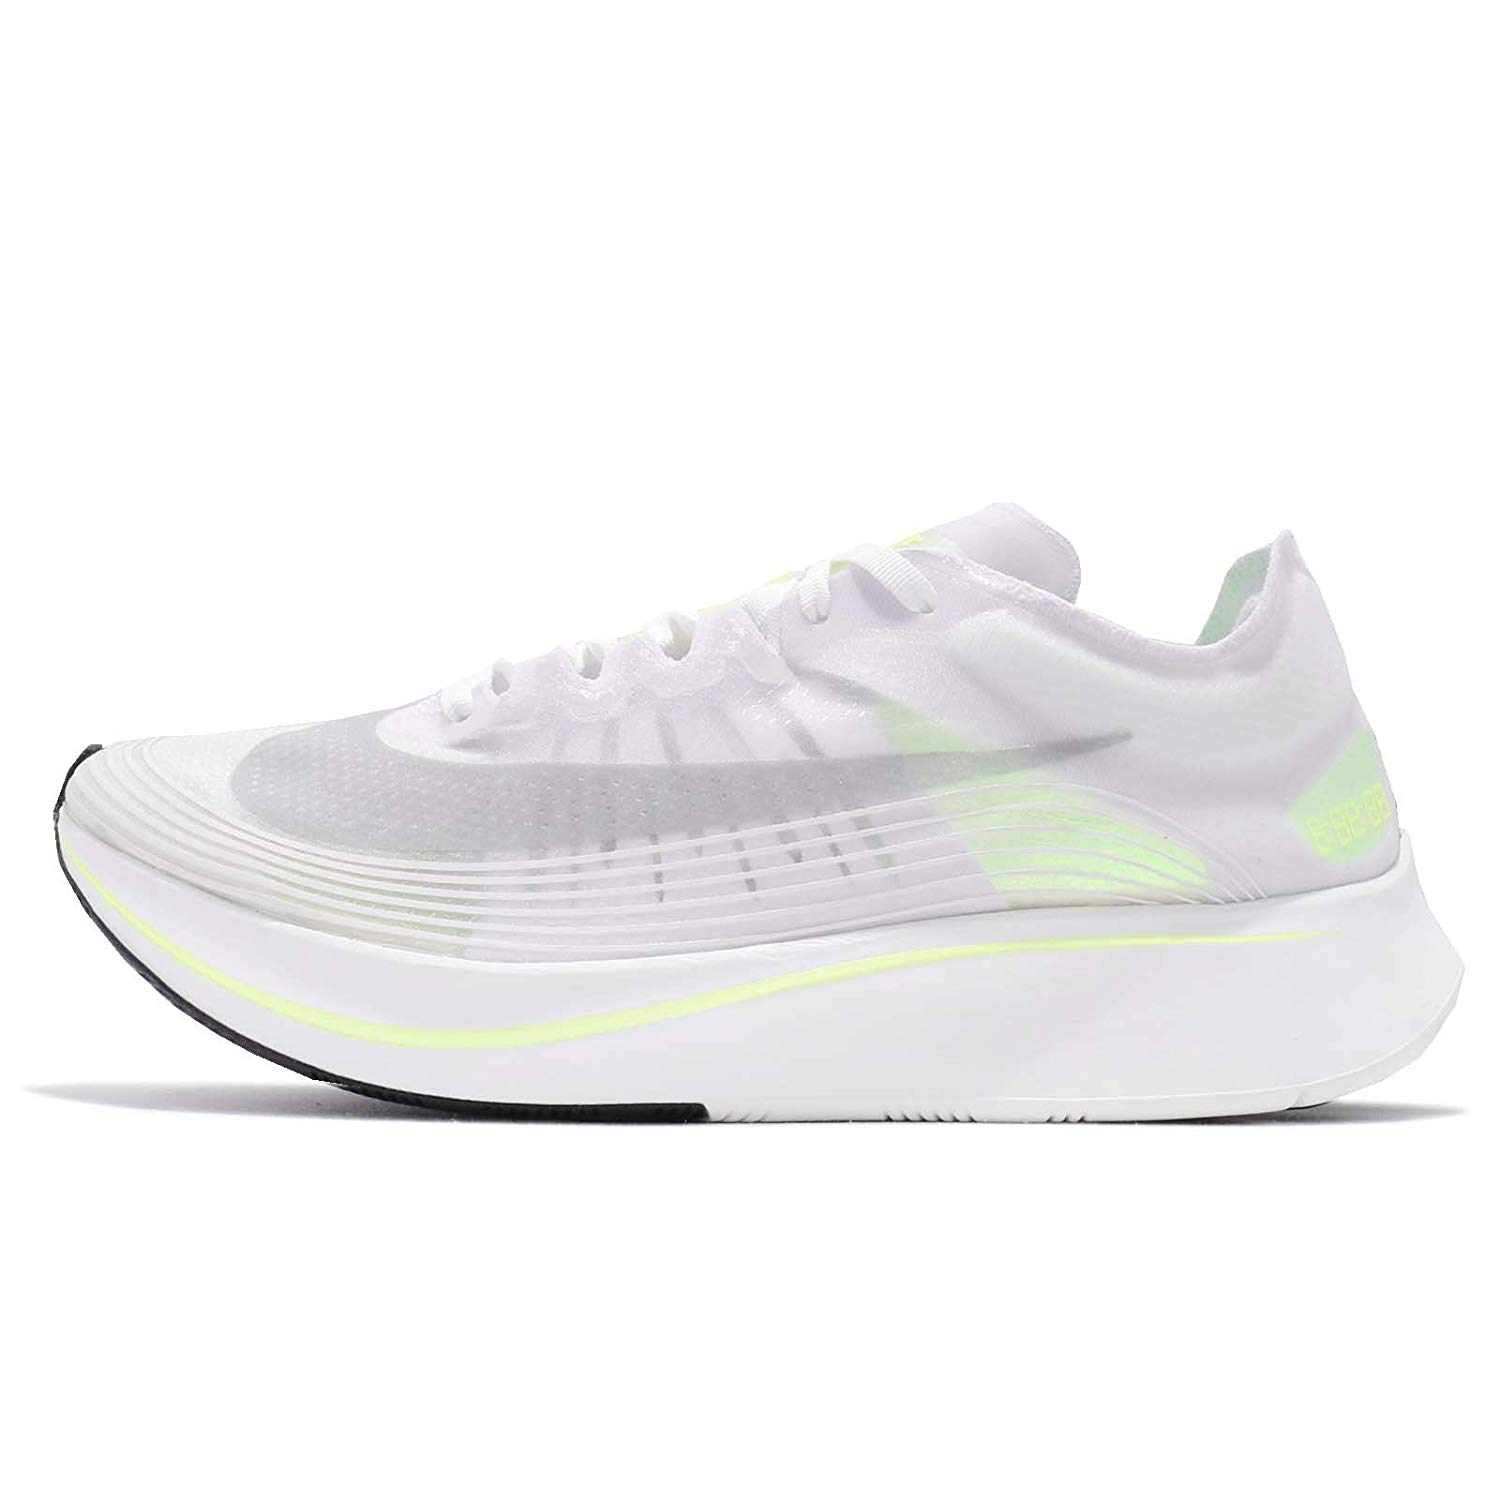 Nike Zoom Fly SP Reviewed for